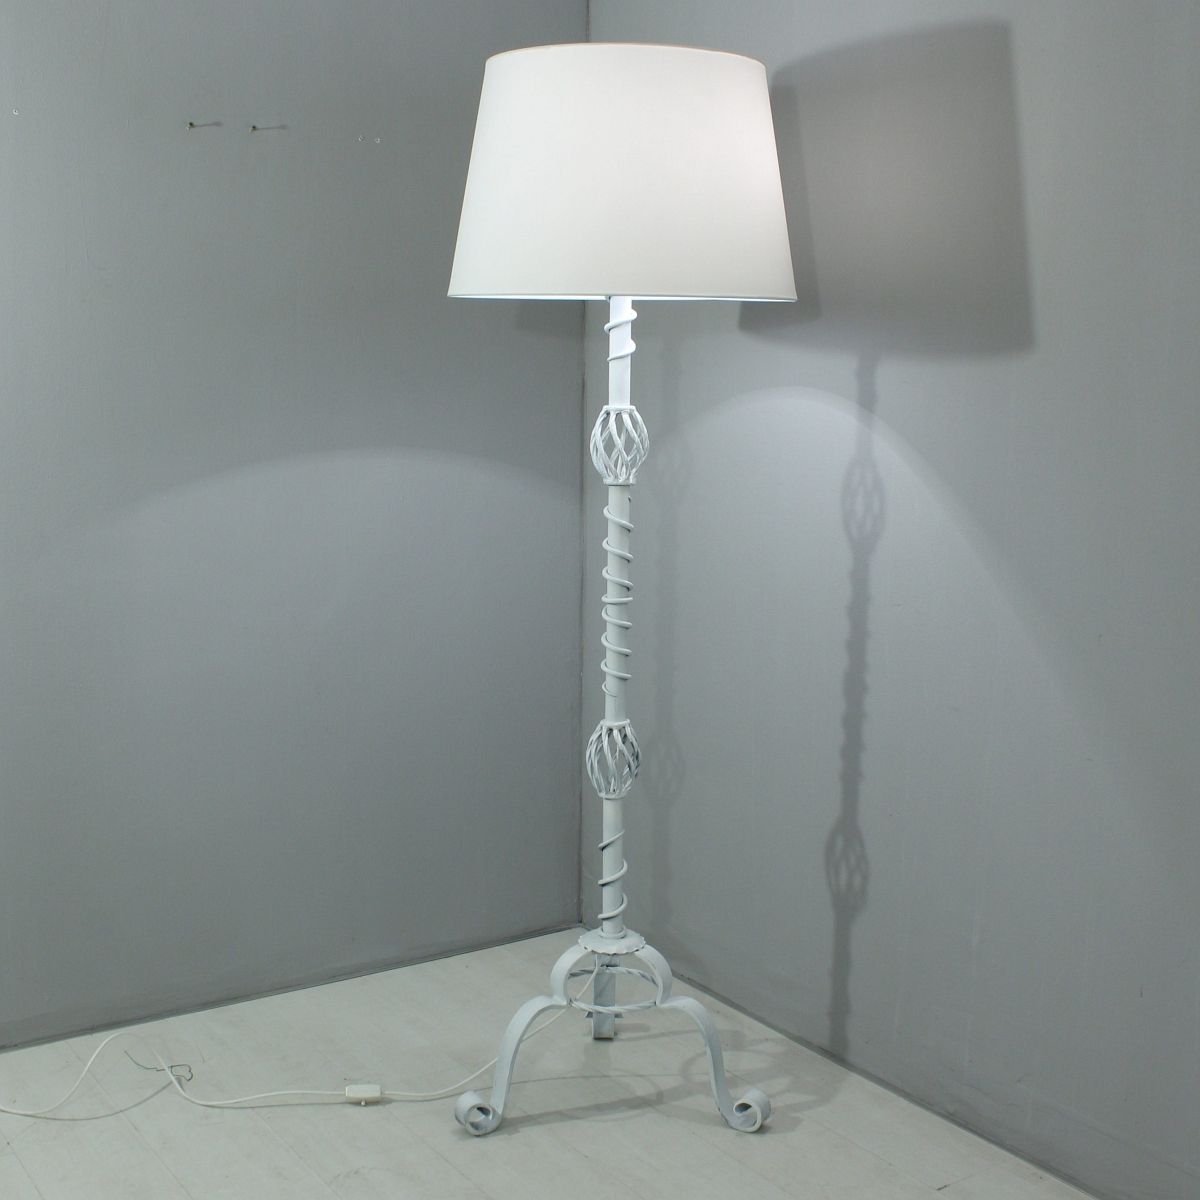 Vintage White Floor Lamp, 1930s for sale at Pamono